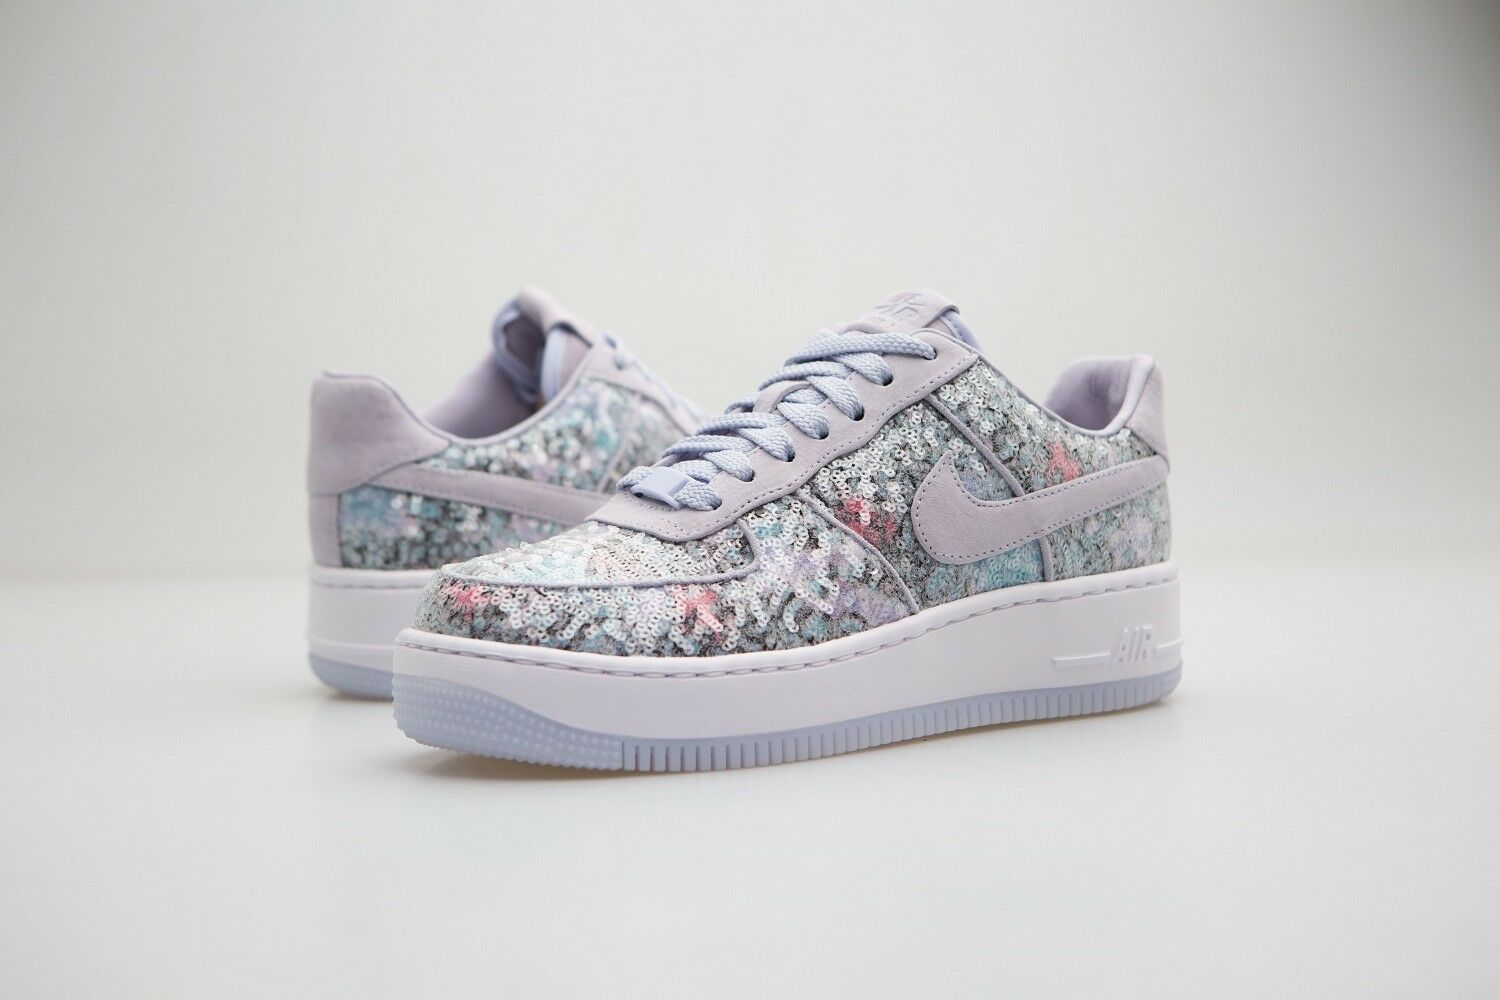 917589-500 Nike Women AF1 Air Force 1 Upstep 35 Palest Purple White